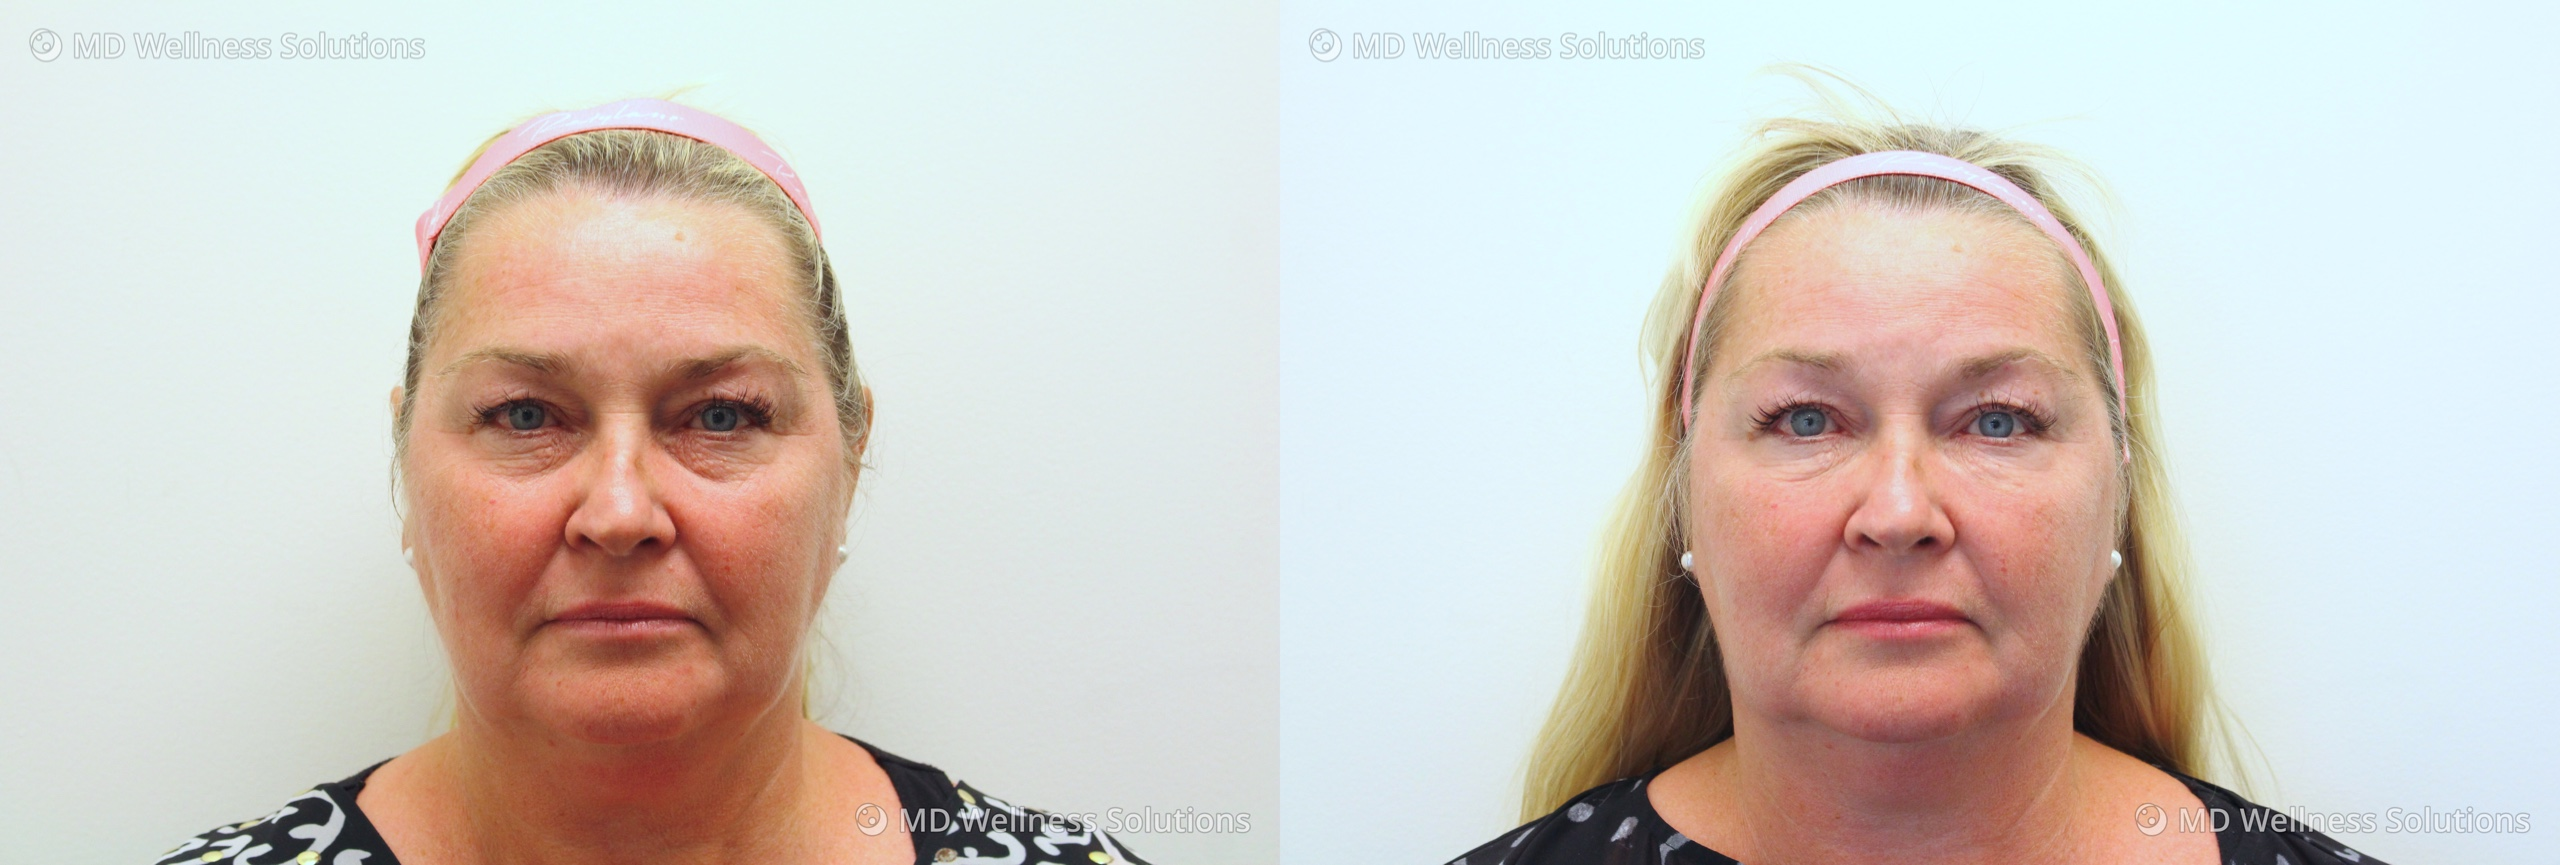 55-64 year old woman before and after dermal filler treatment